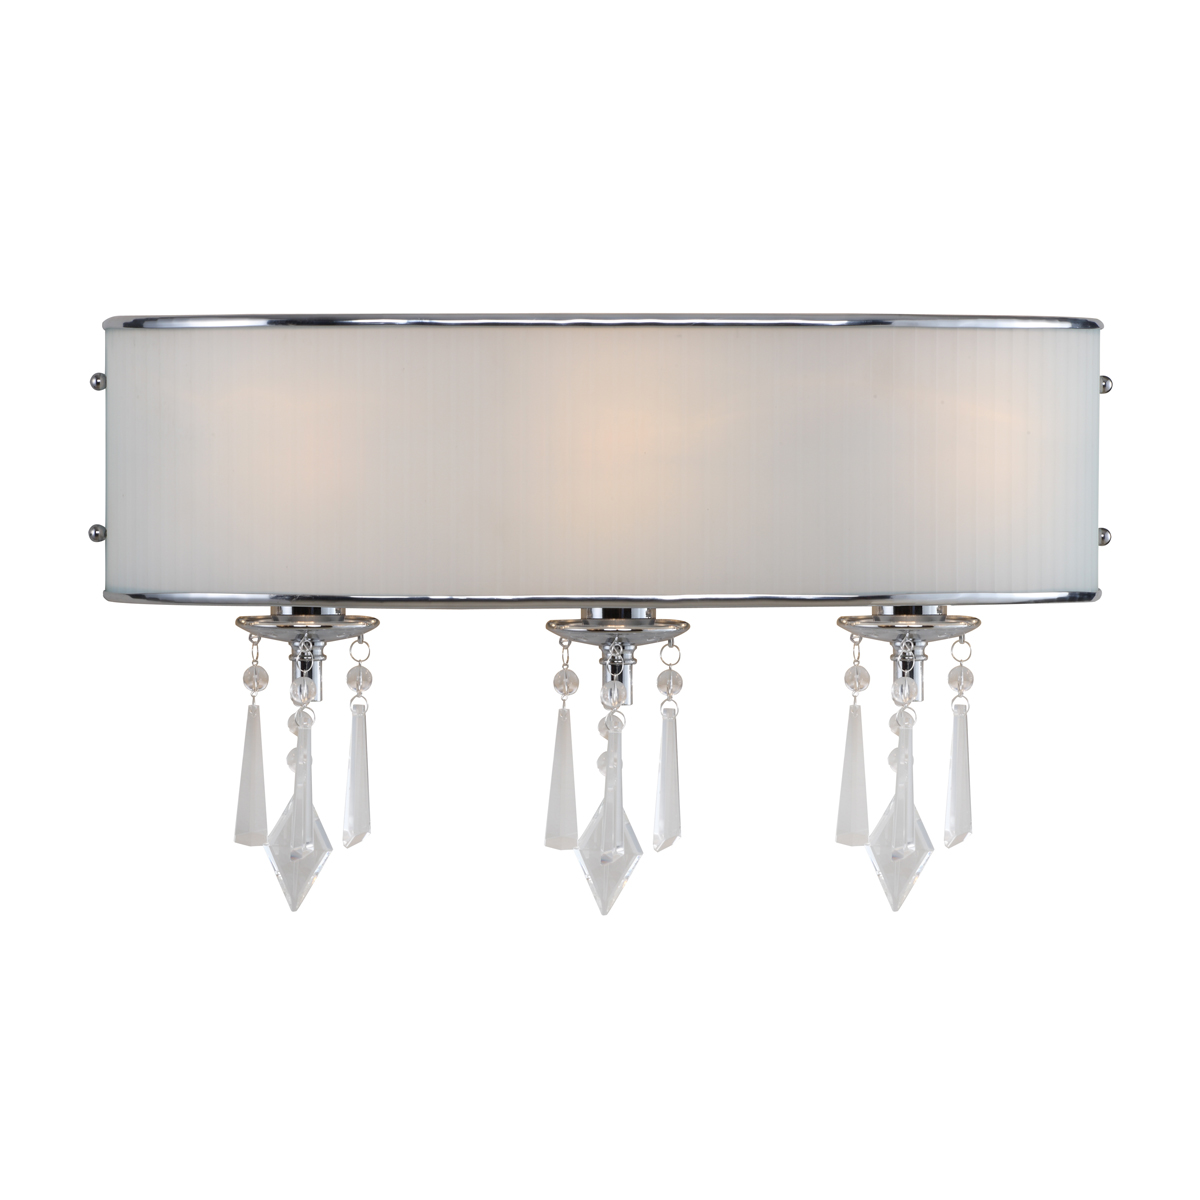 Bathroom vanity light fixtures with luxury trend in spain for Light fixtures for bathrooms